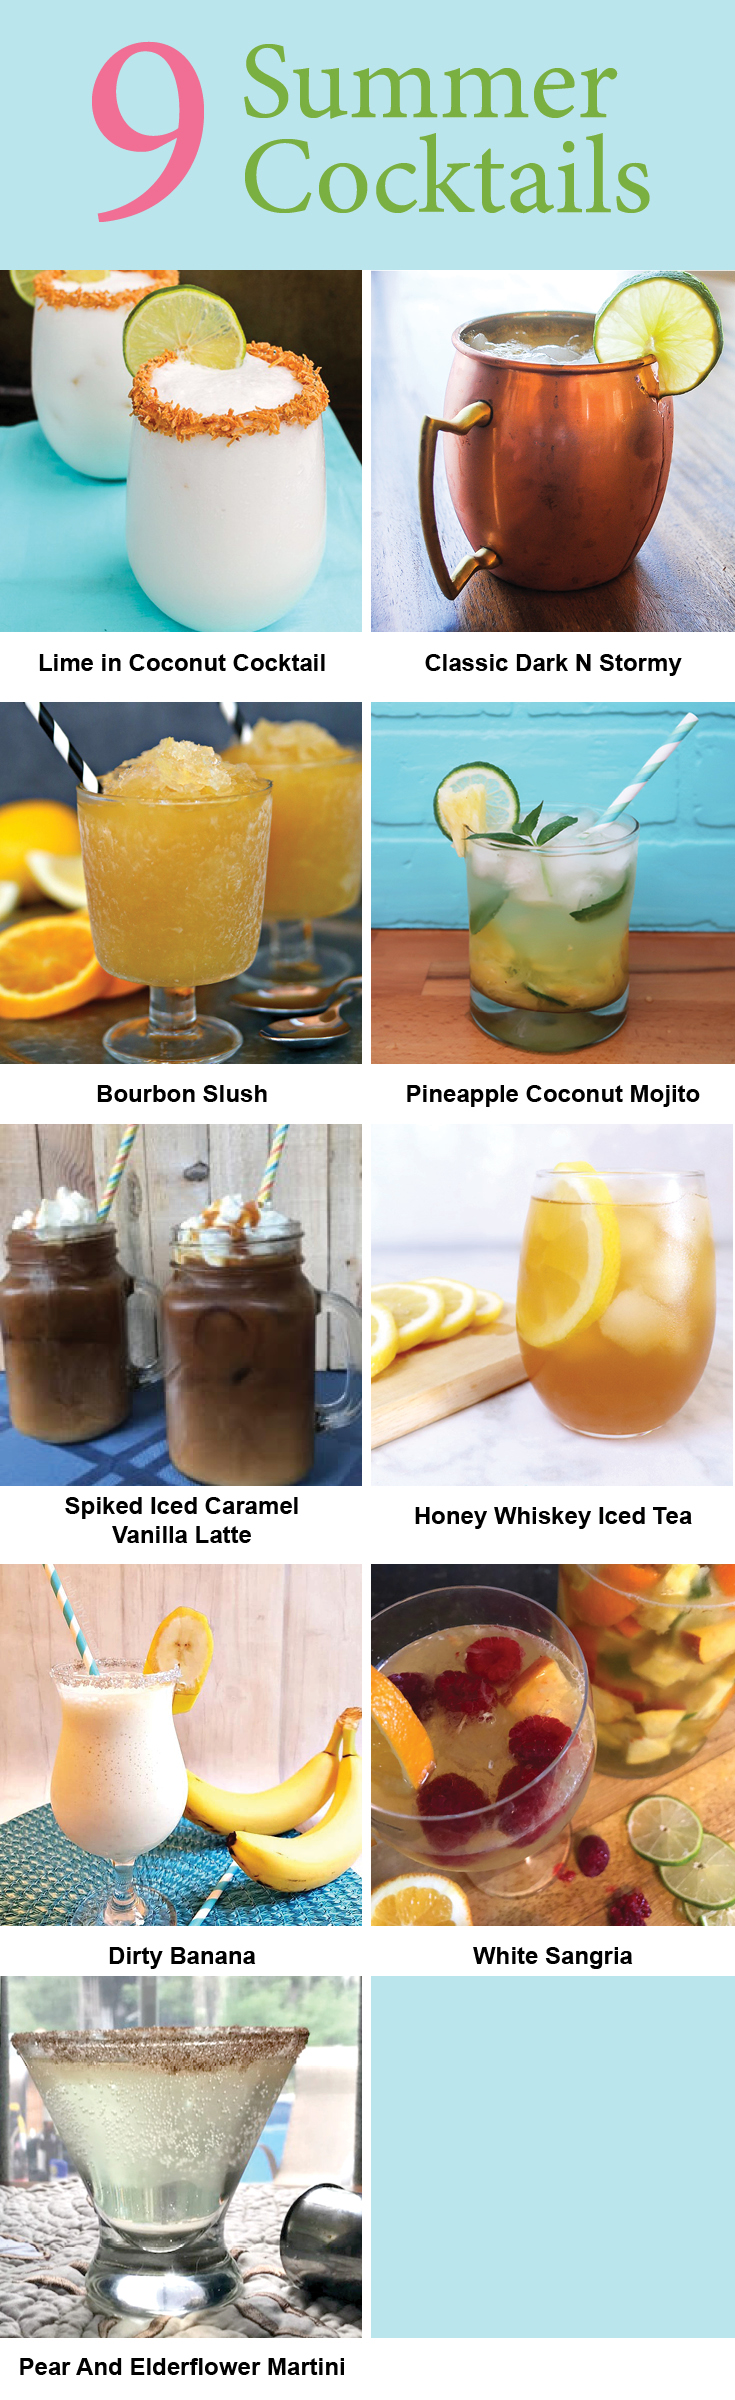 Delicious Cocktails to try this summer!